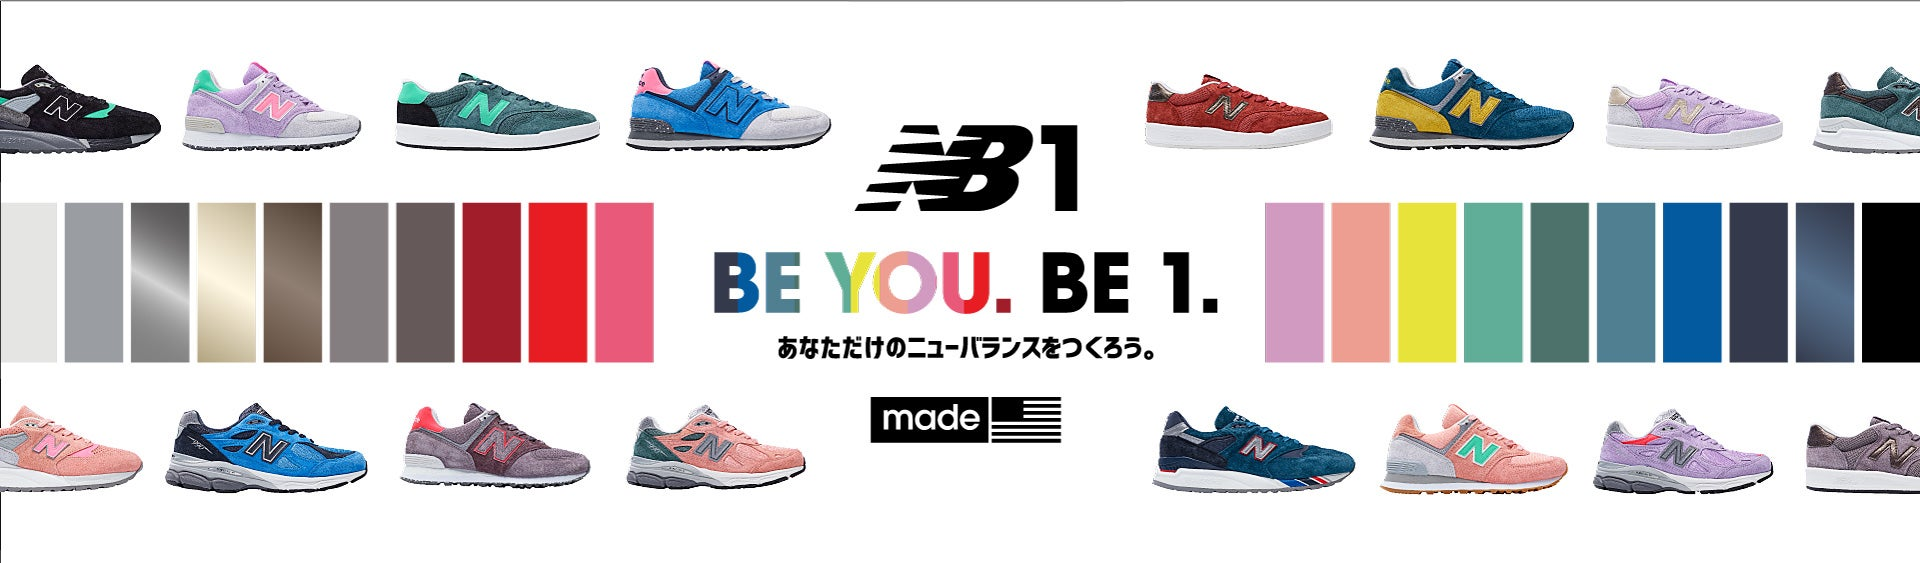 MADE in U.S.Aのシューズカスタマイズ「NB1」